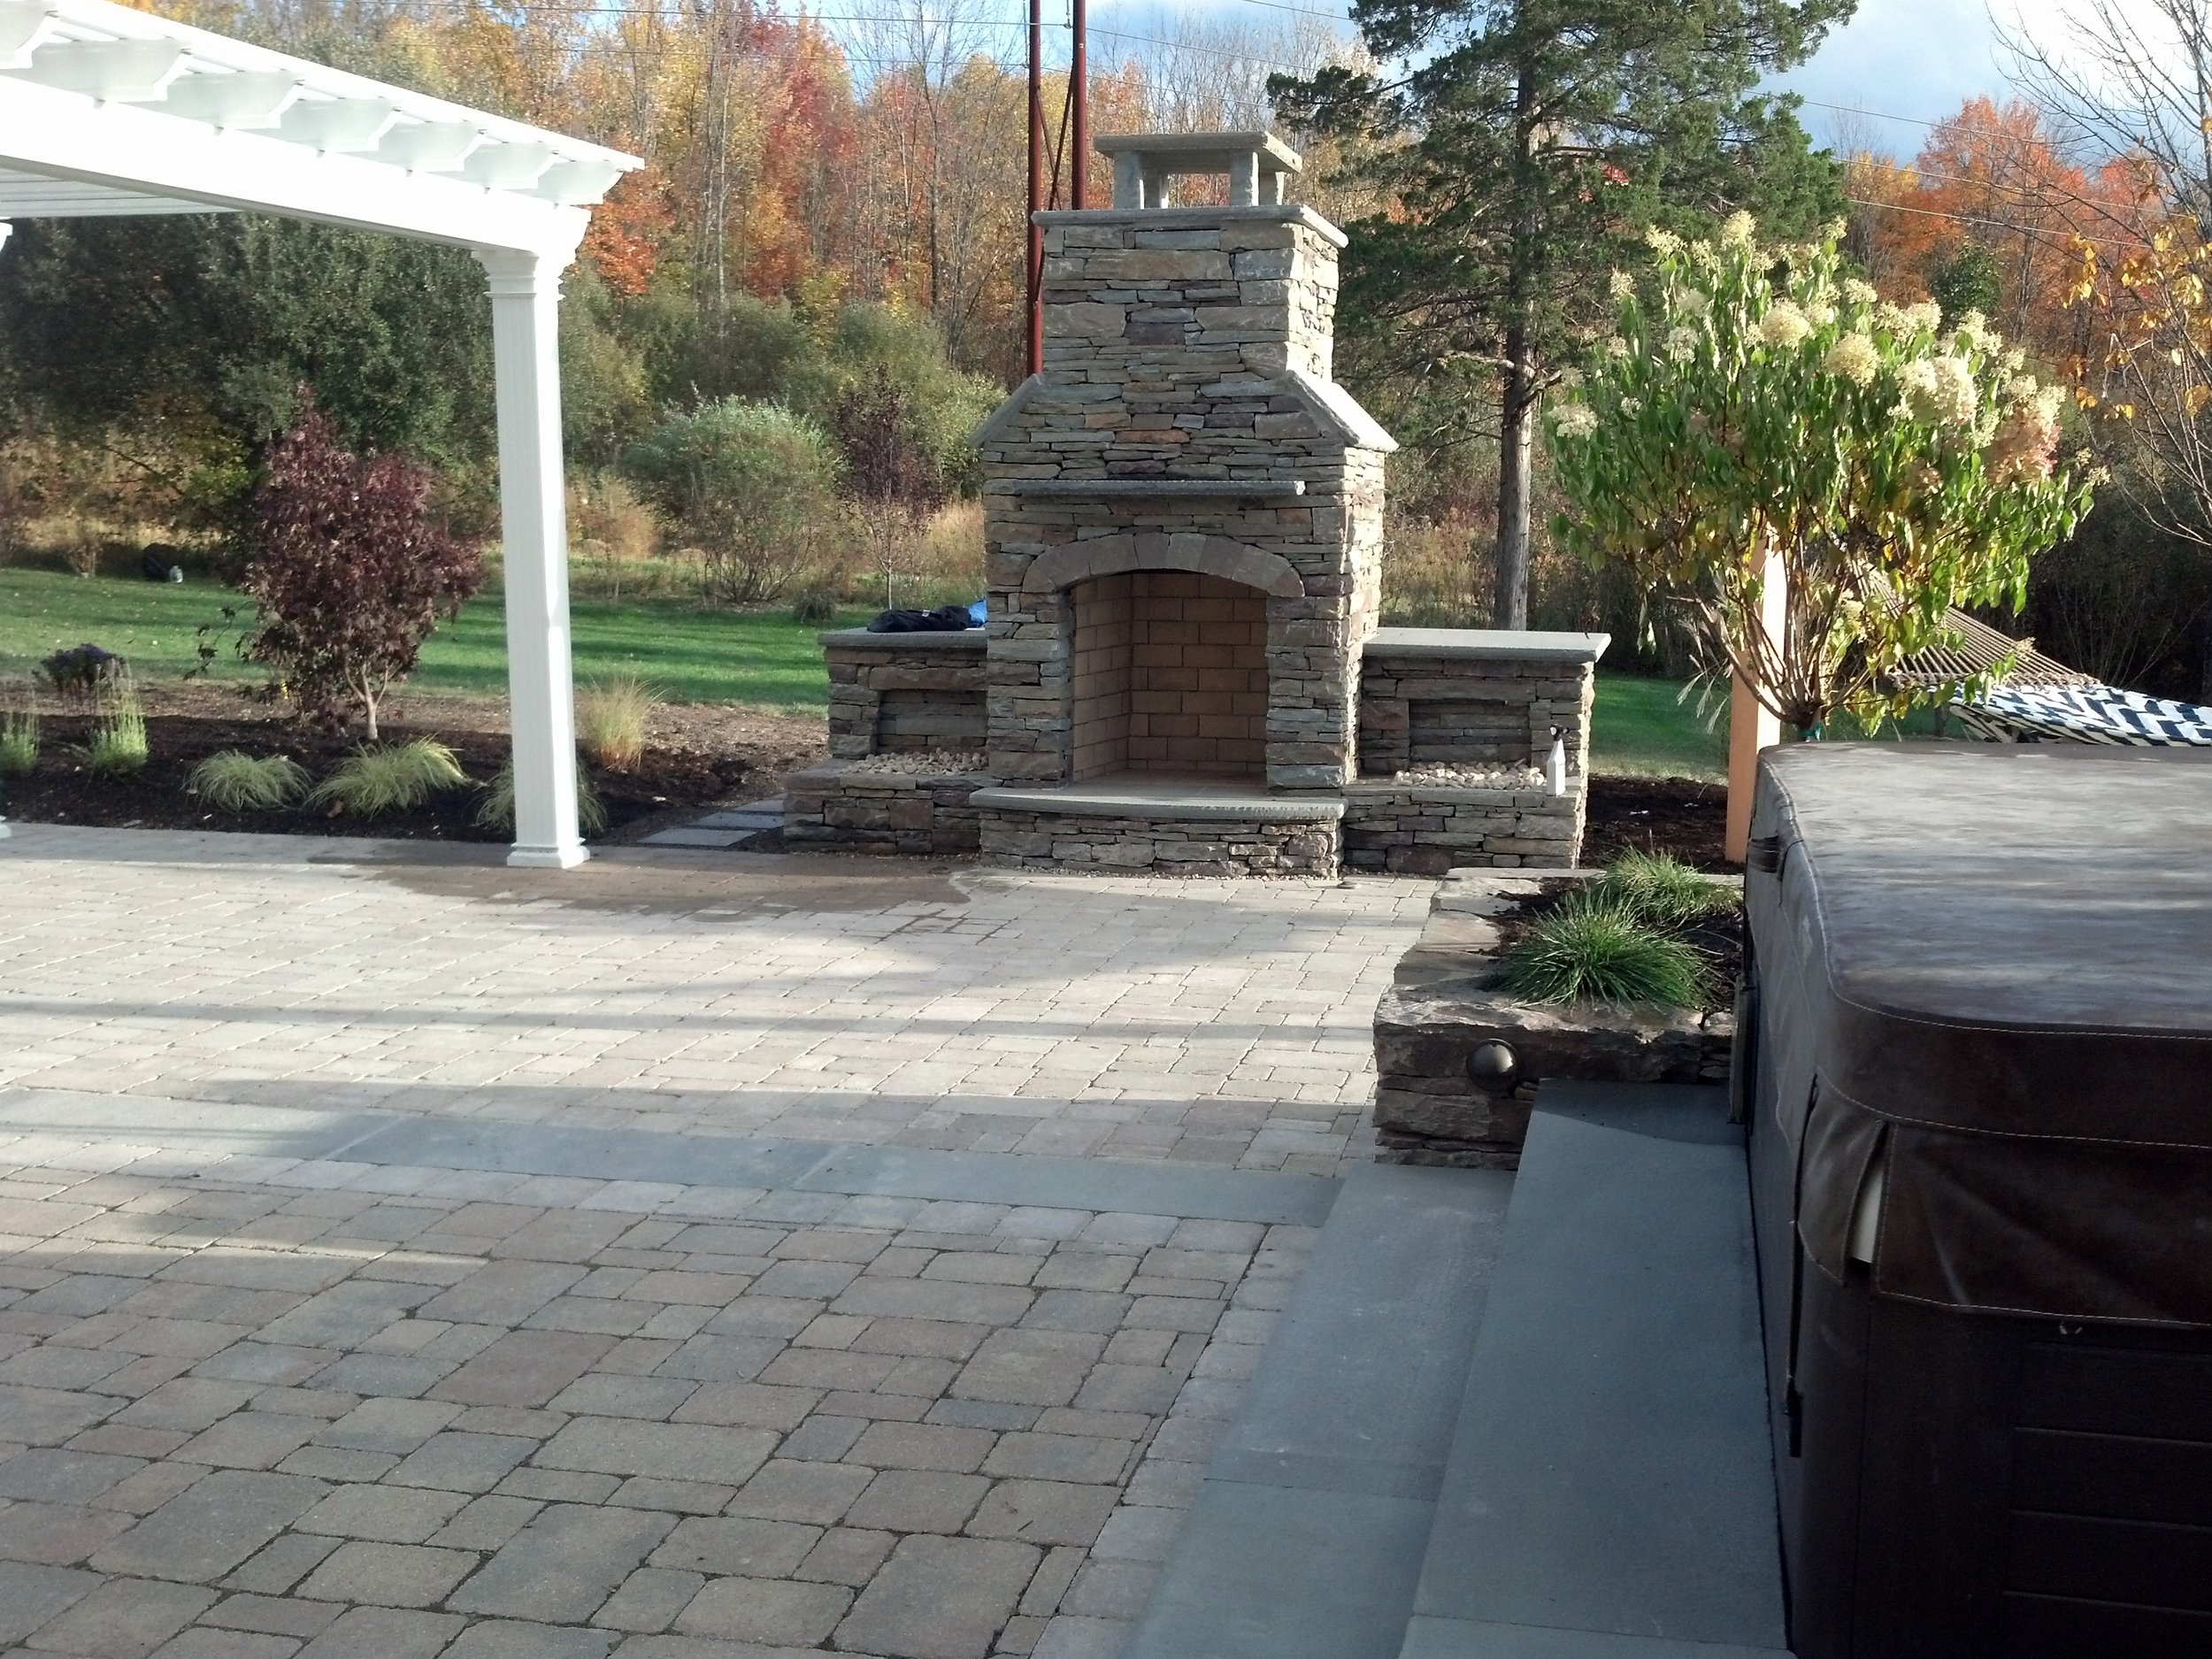 Fireplaces - AmenitiesWe specialize in outdoor kitchens, fireplaces, fire pits, pergolas, and many more outdoor amenities. Whether constructed out of natural stone or pavers we can guarantee our quality.